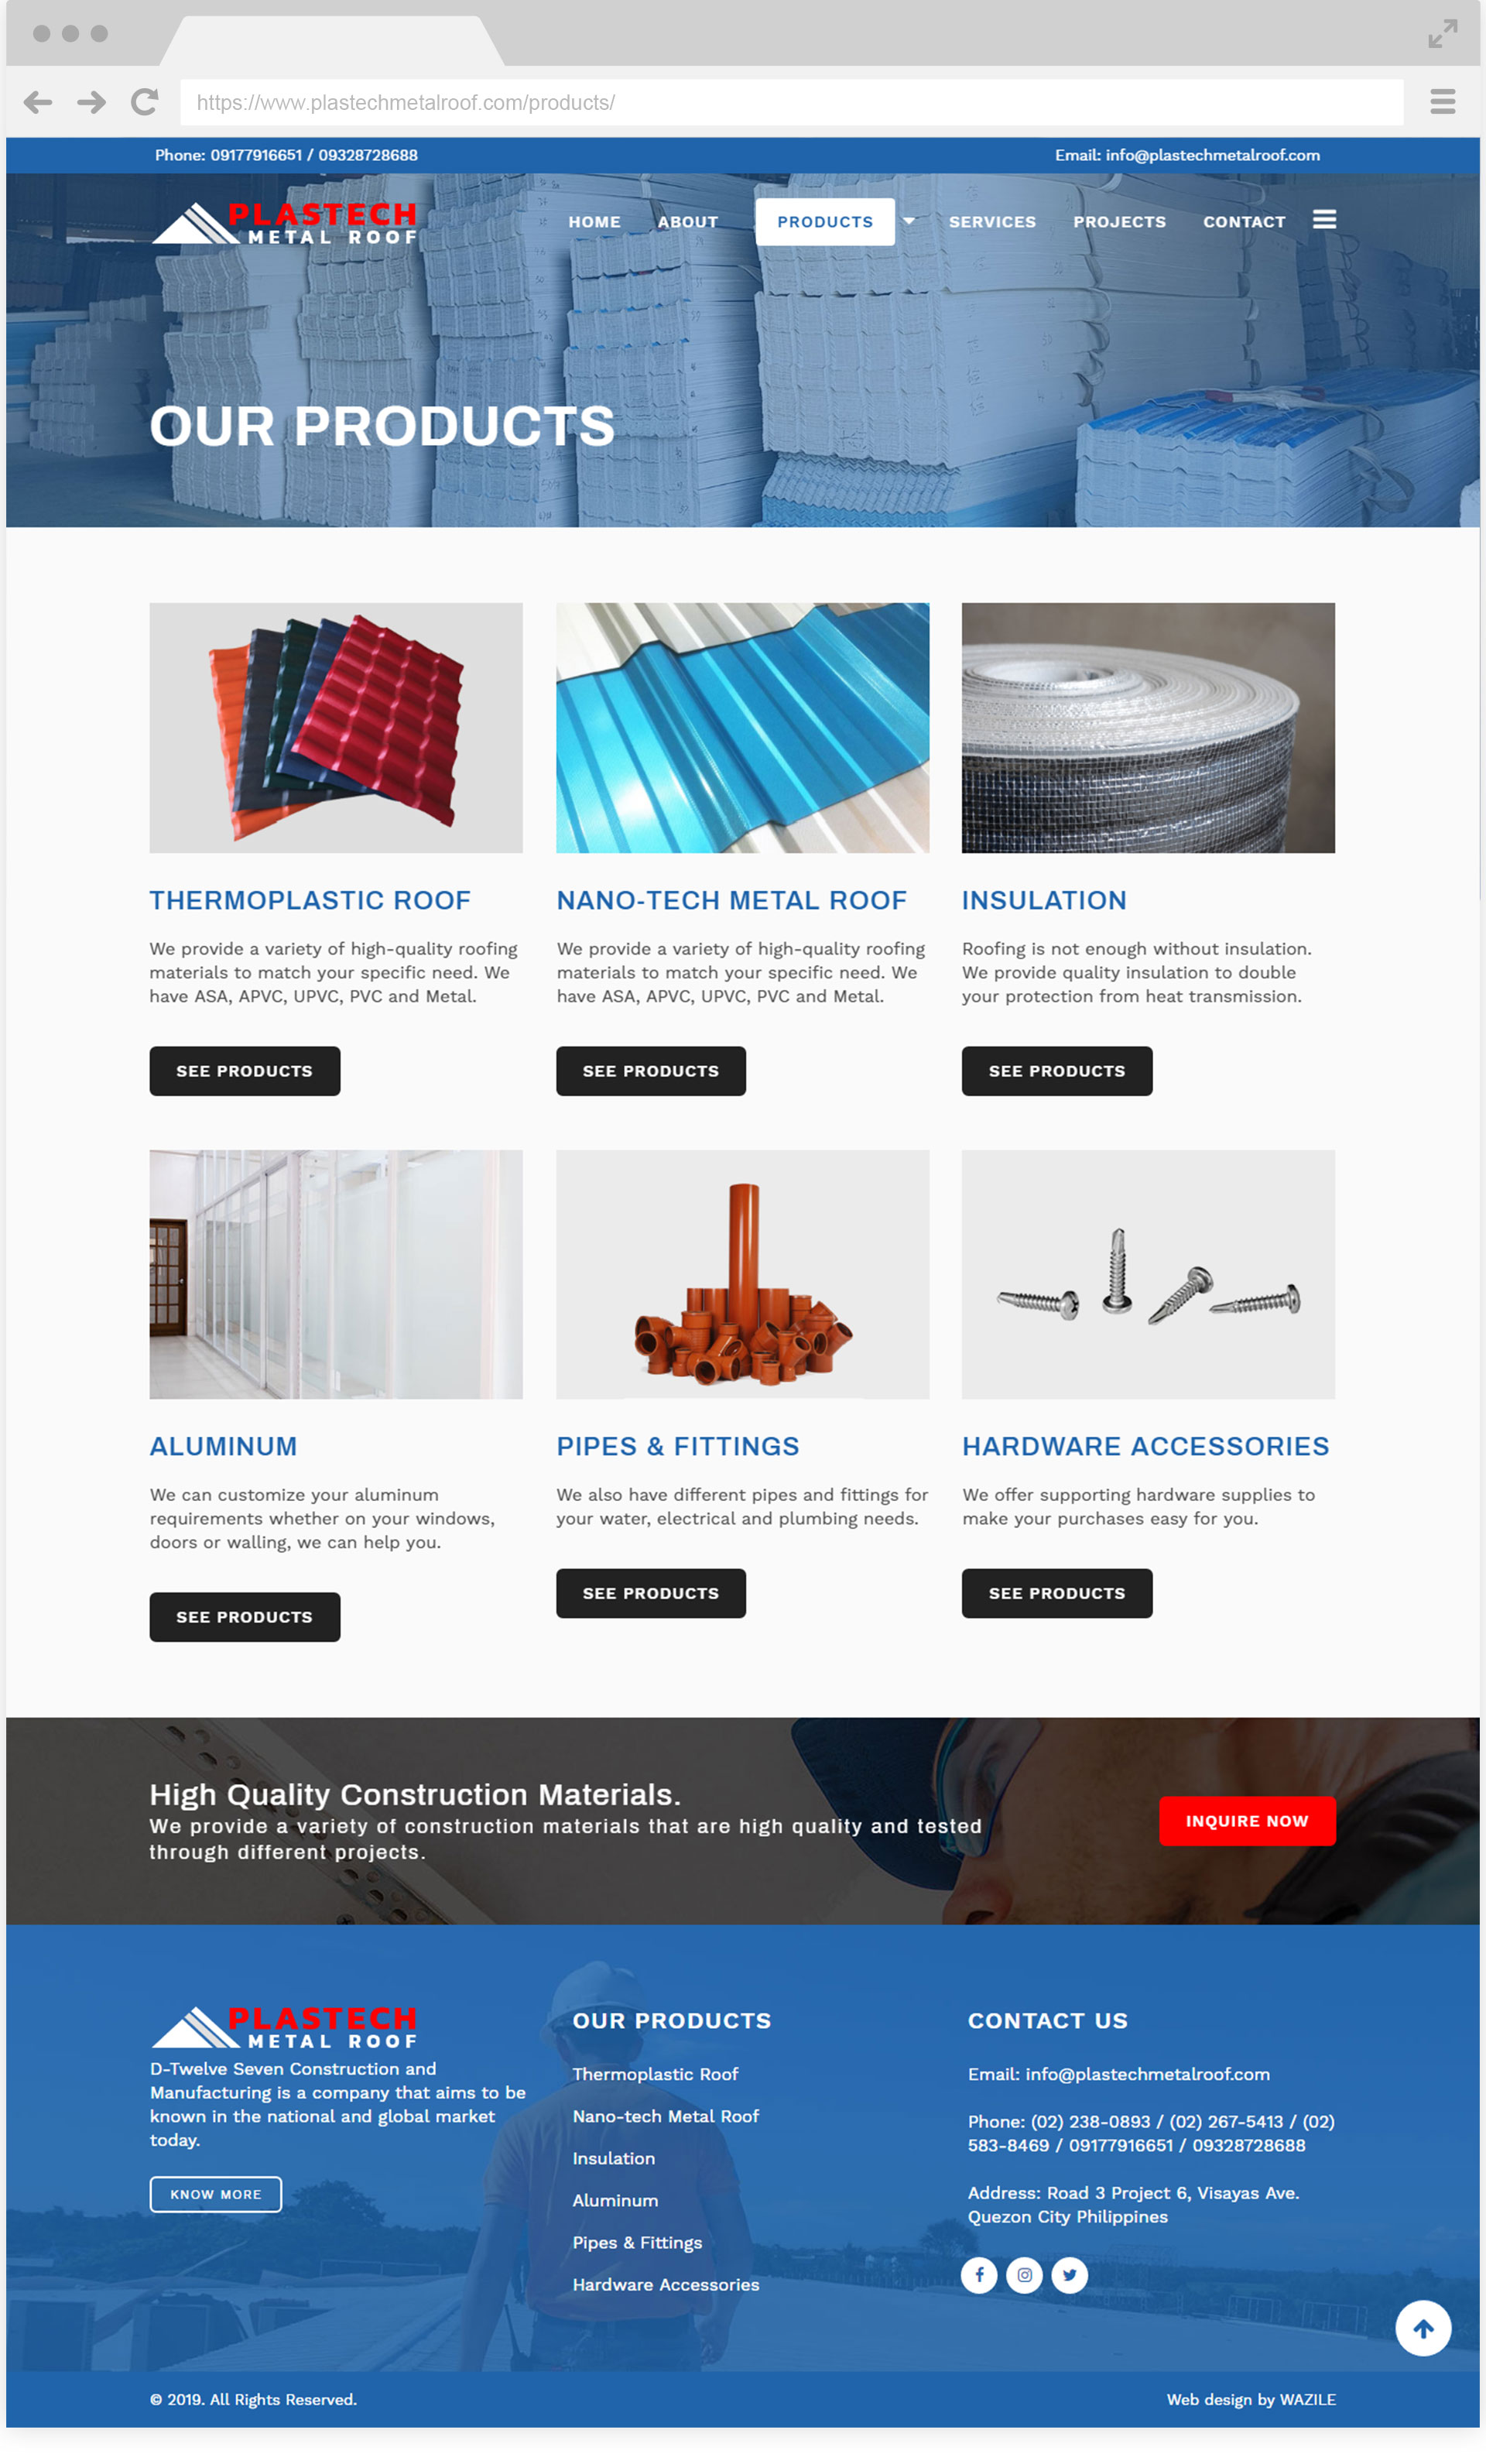 Plastech Metal Roof Products